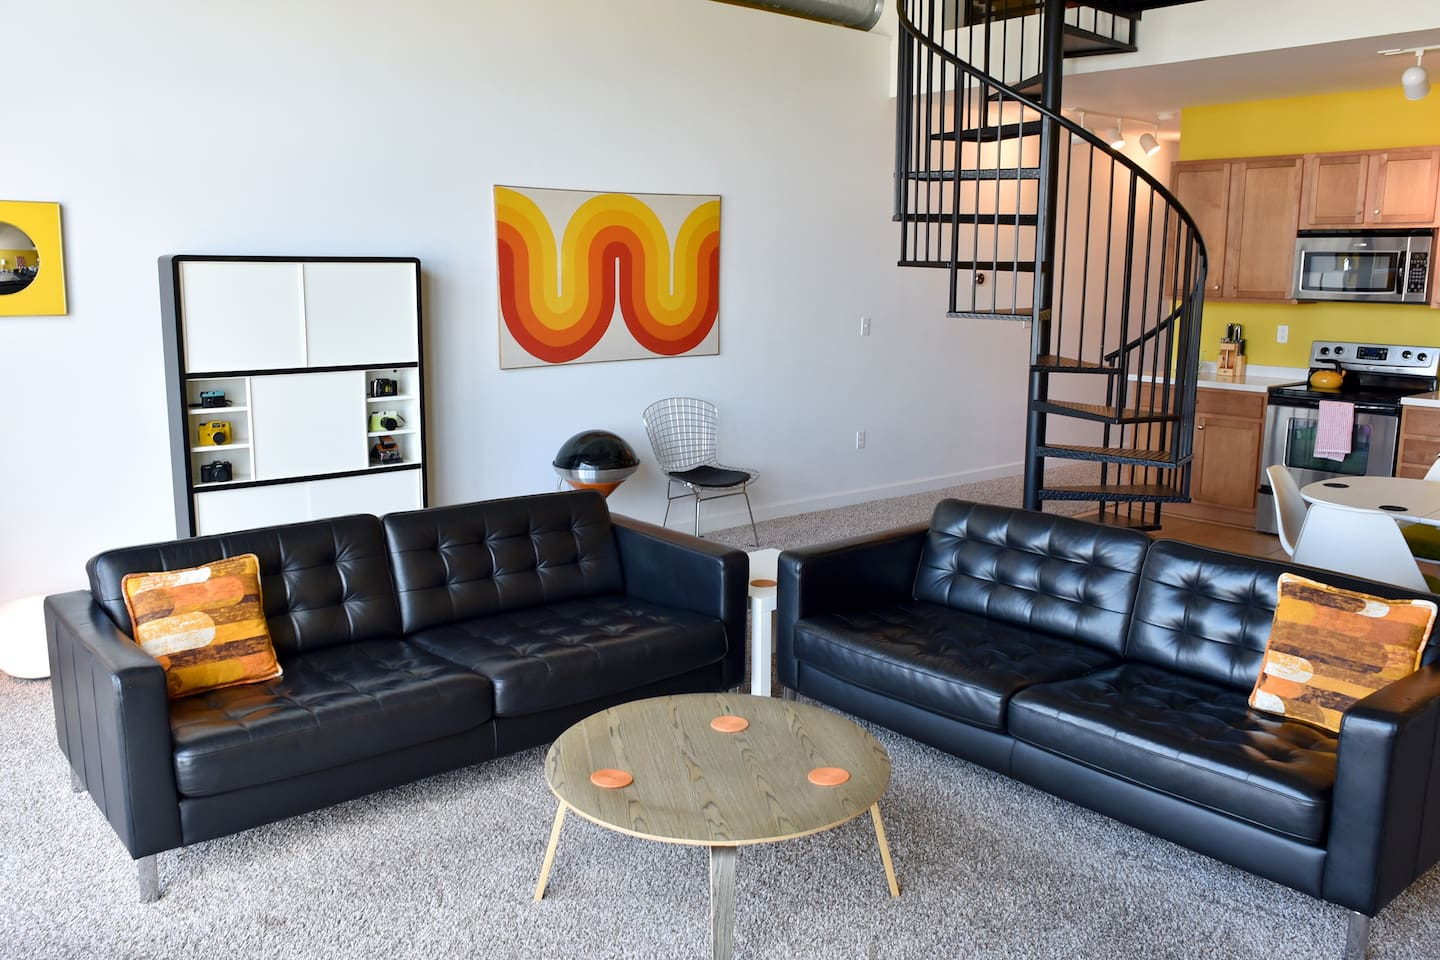 Ultra modern loft on the lake view of cedar point lofts for rent in sandusky ohio united states